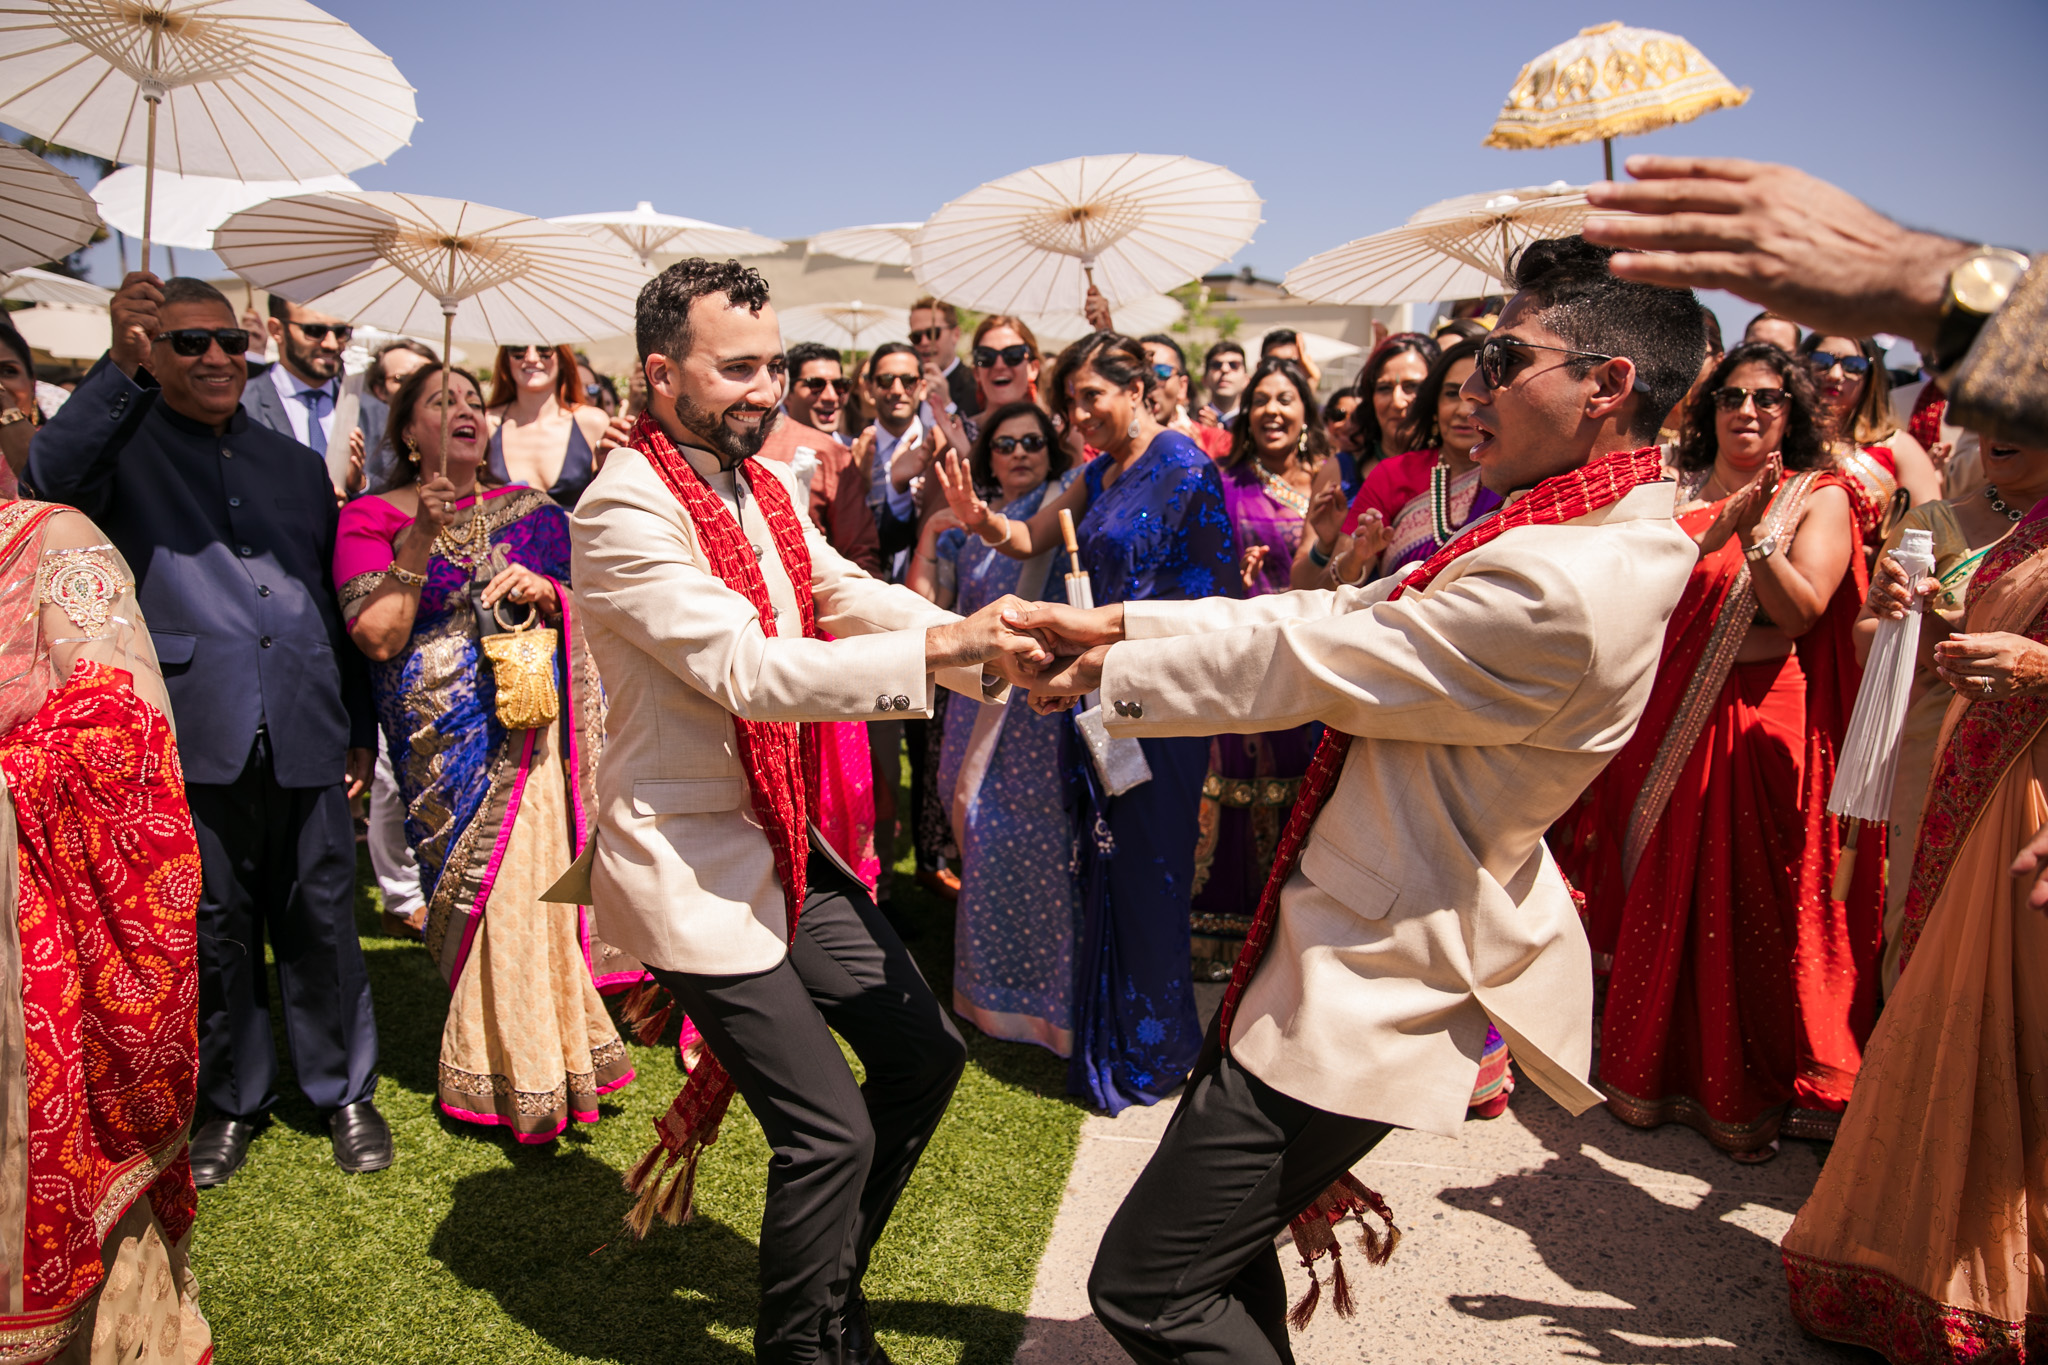 010 ritz carlton laguna niguel indian baraat wedding photography